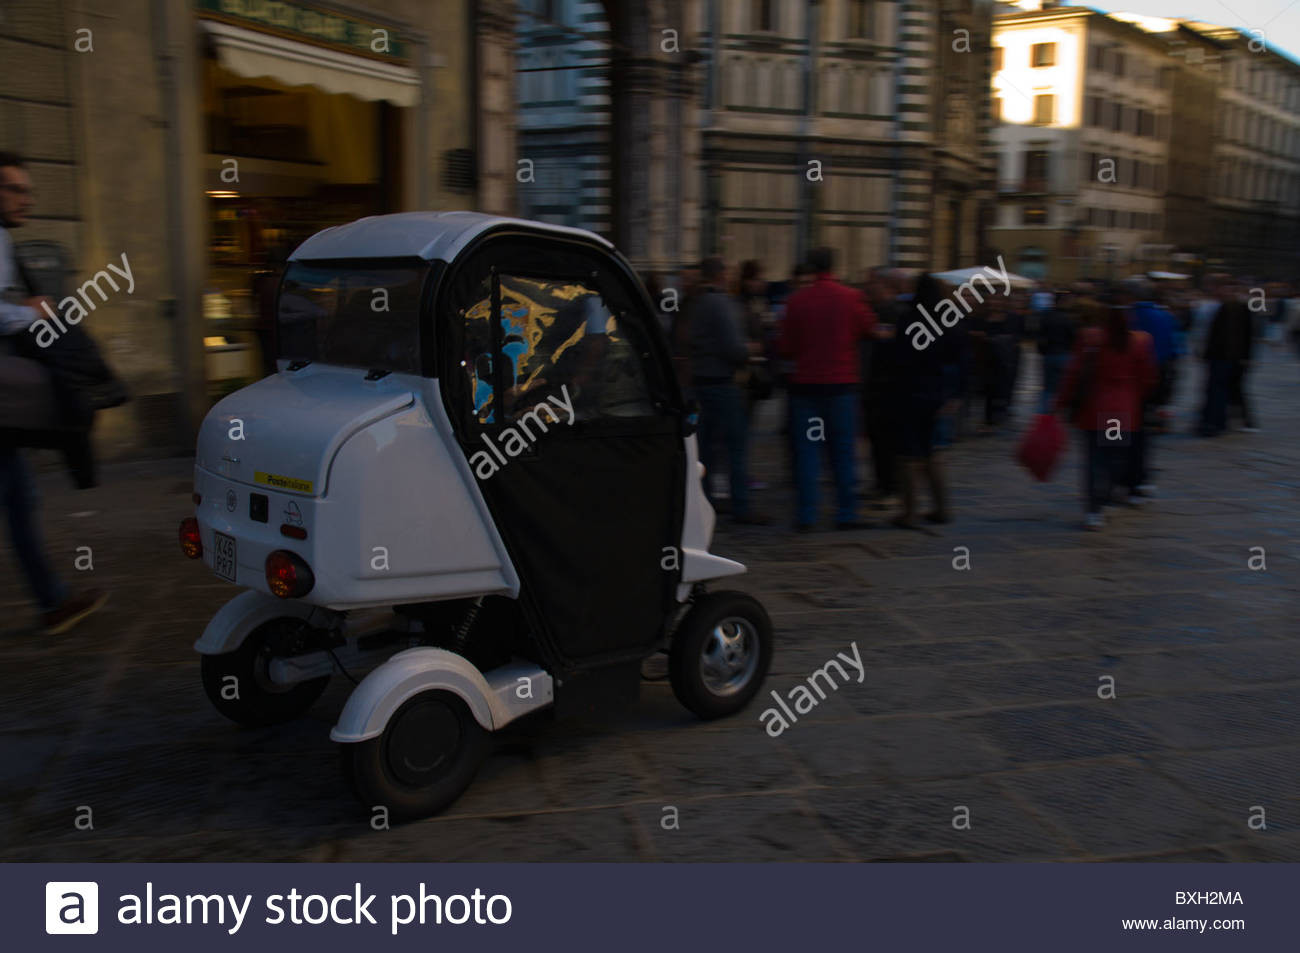 Postal delivery vehicle at Piazza del Duomo square Florence (Firenze) Tuscany central Italy Europe Stock Photo